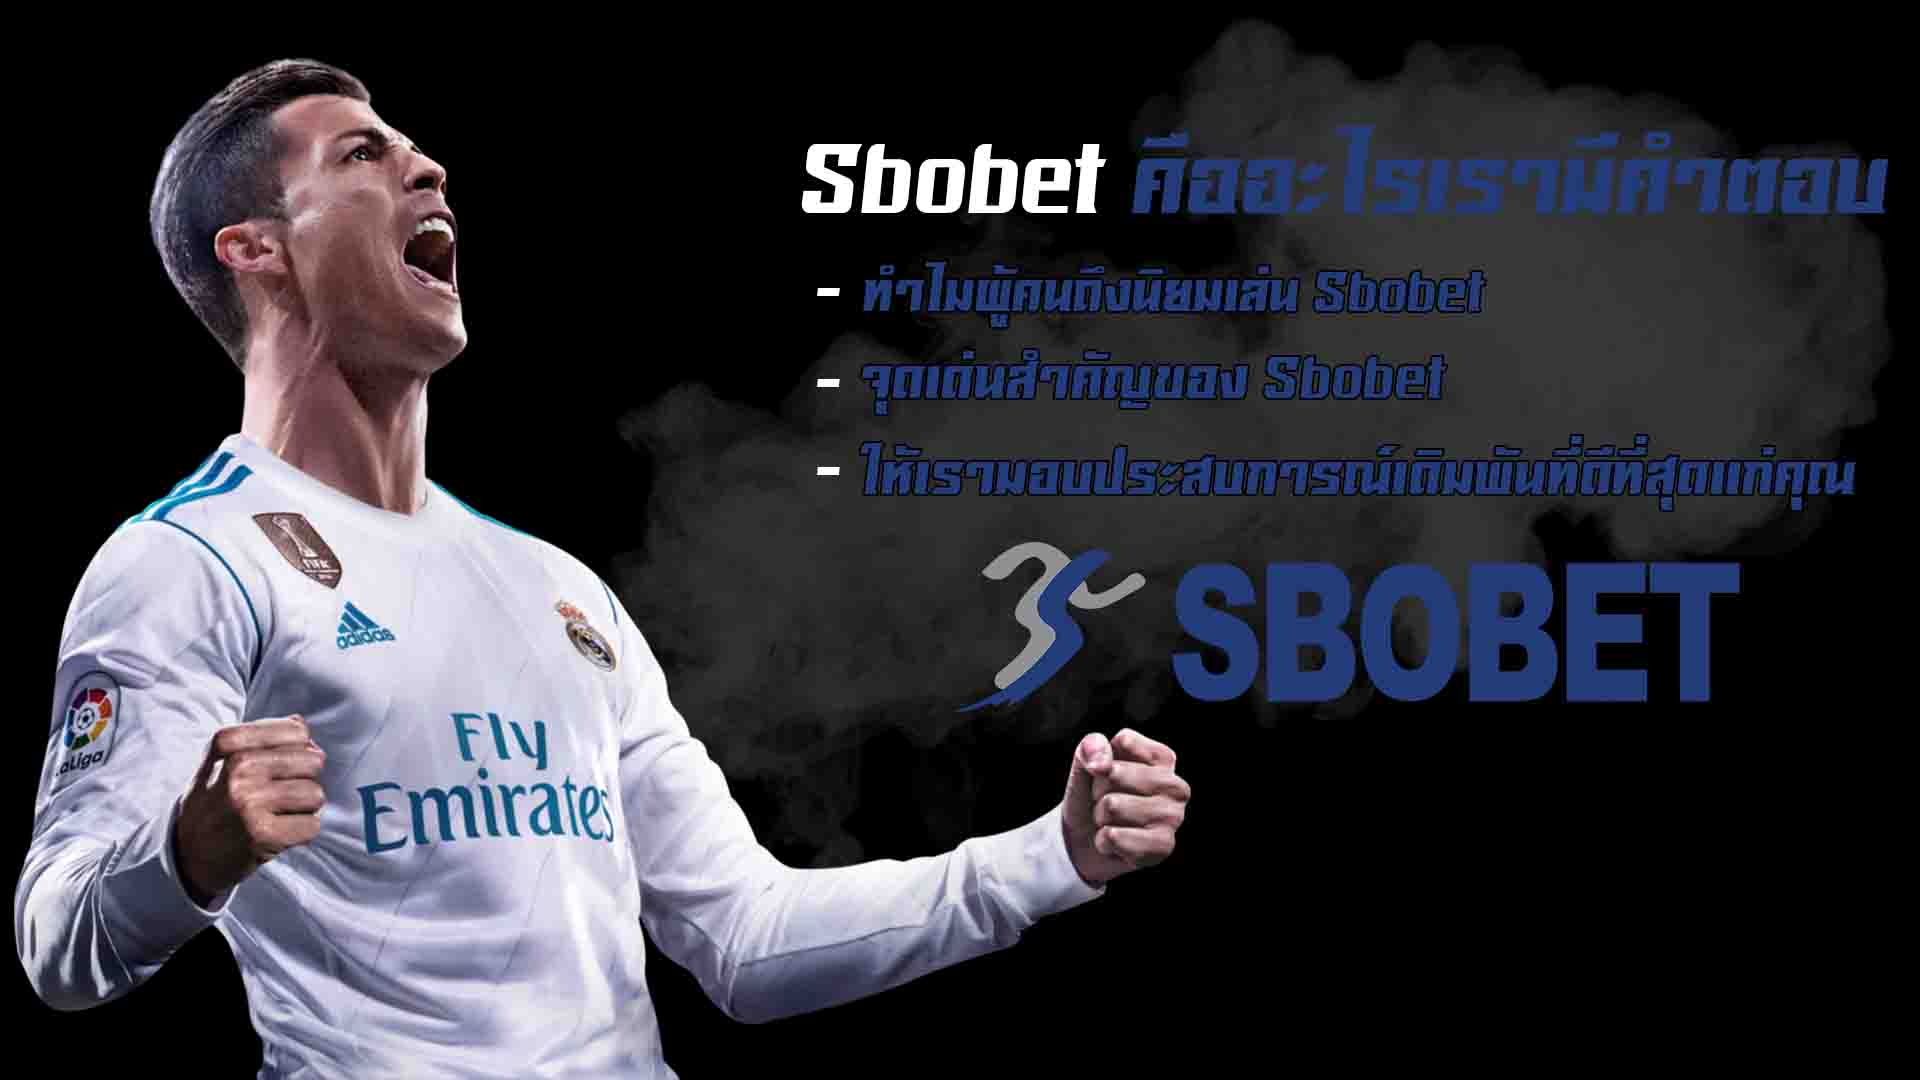 wallpaper-howto-sbobet-anovagency